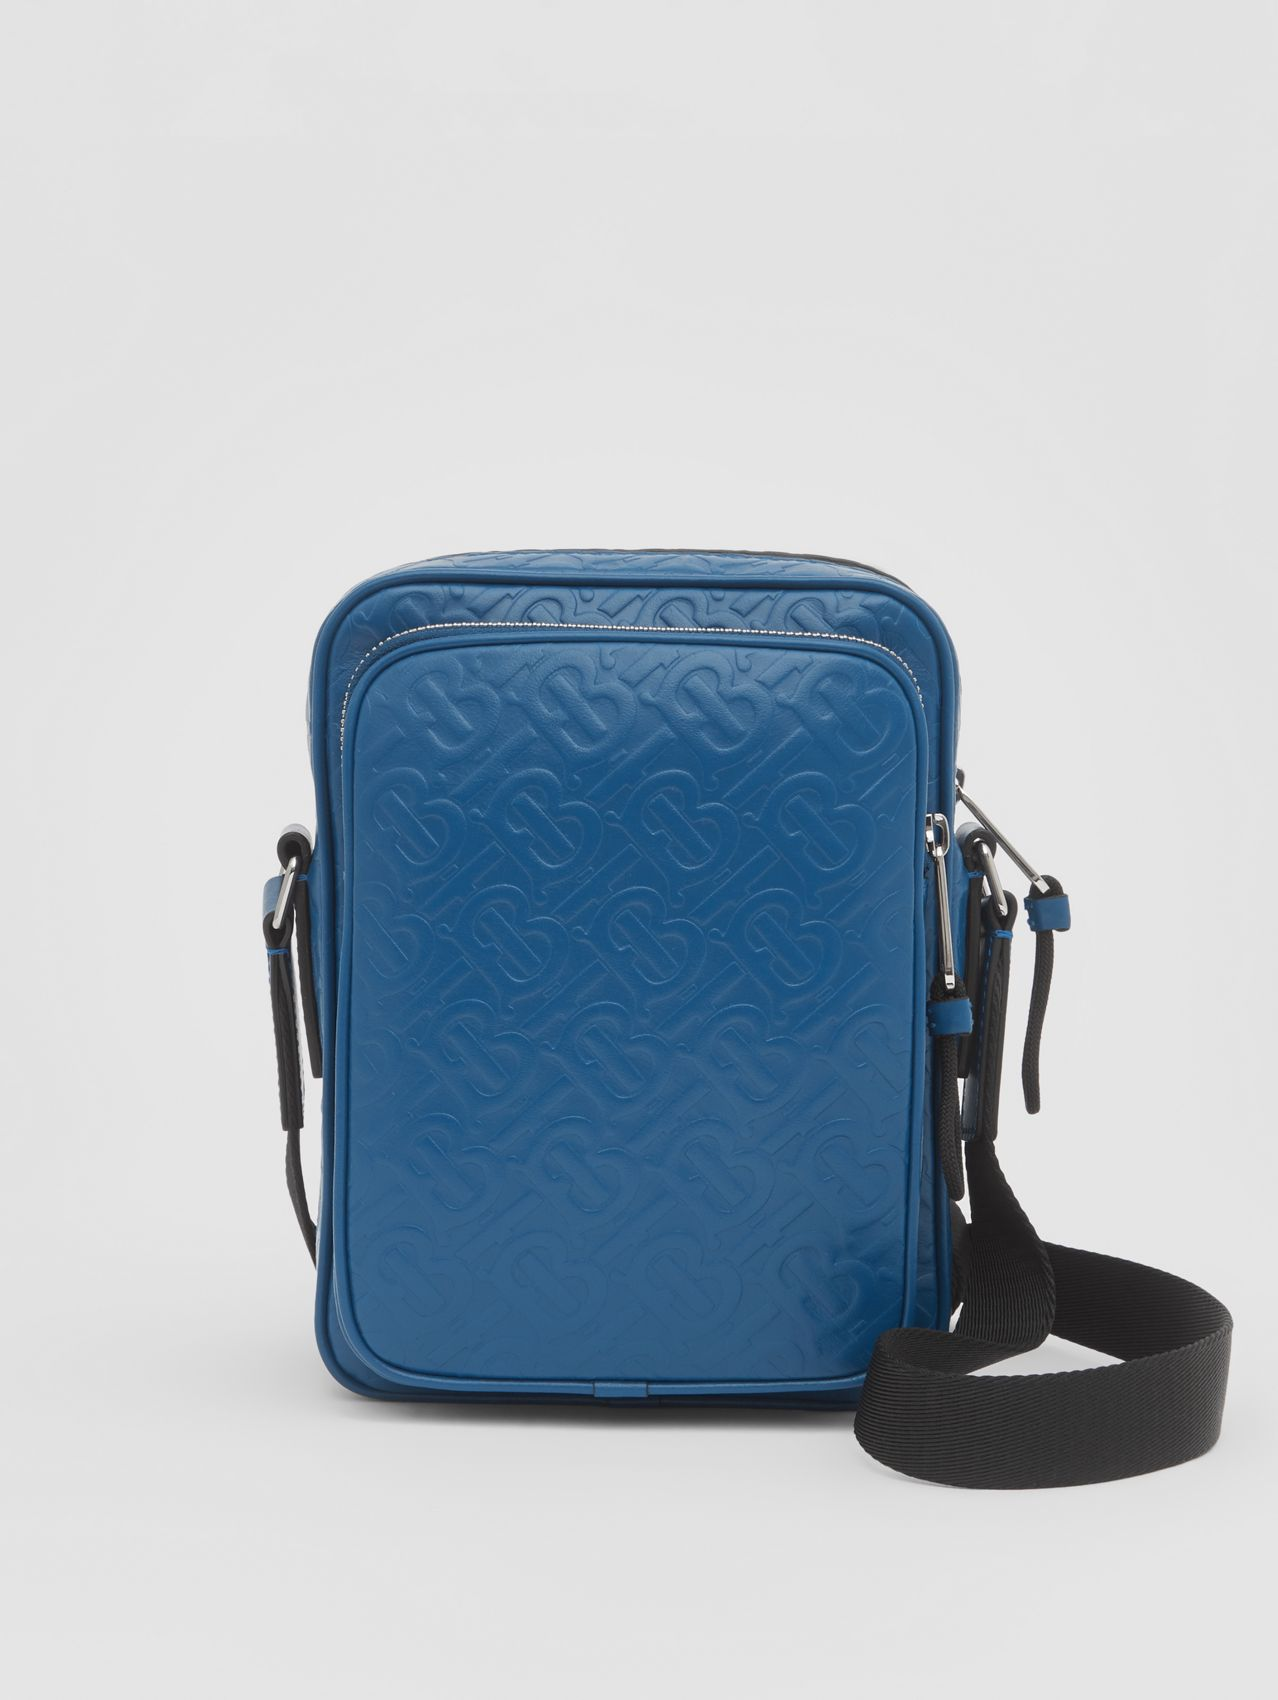 Monogram Leather Crossbody Bag (Pale Canvas Blue)